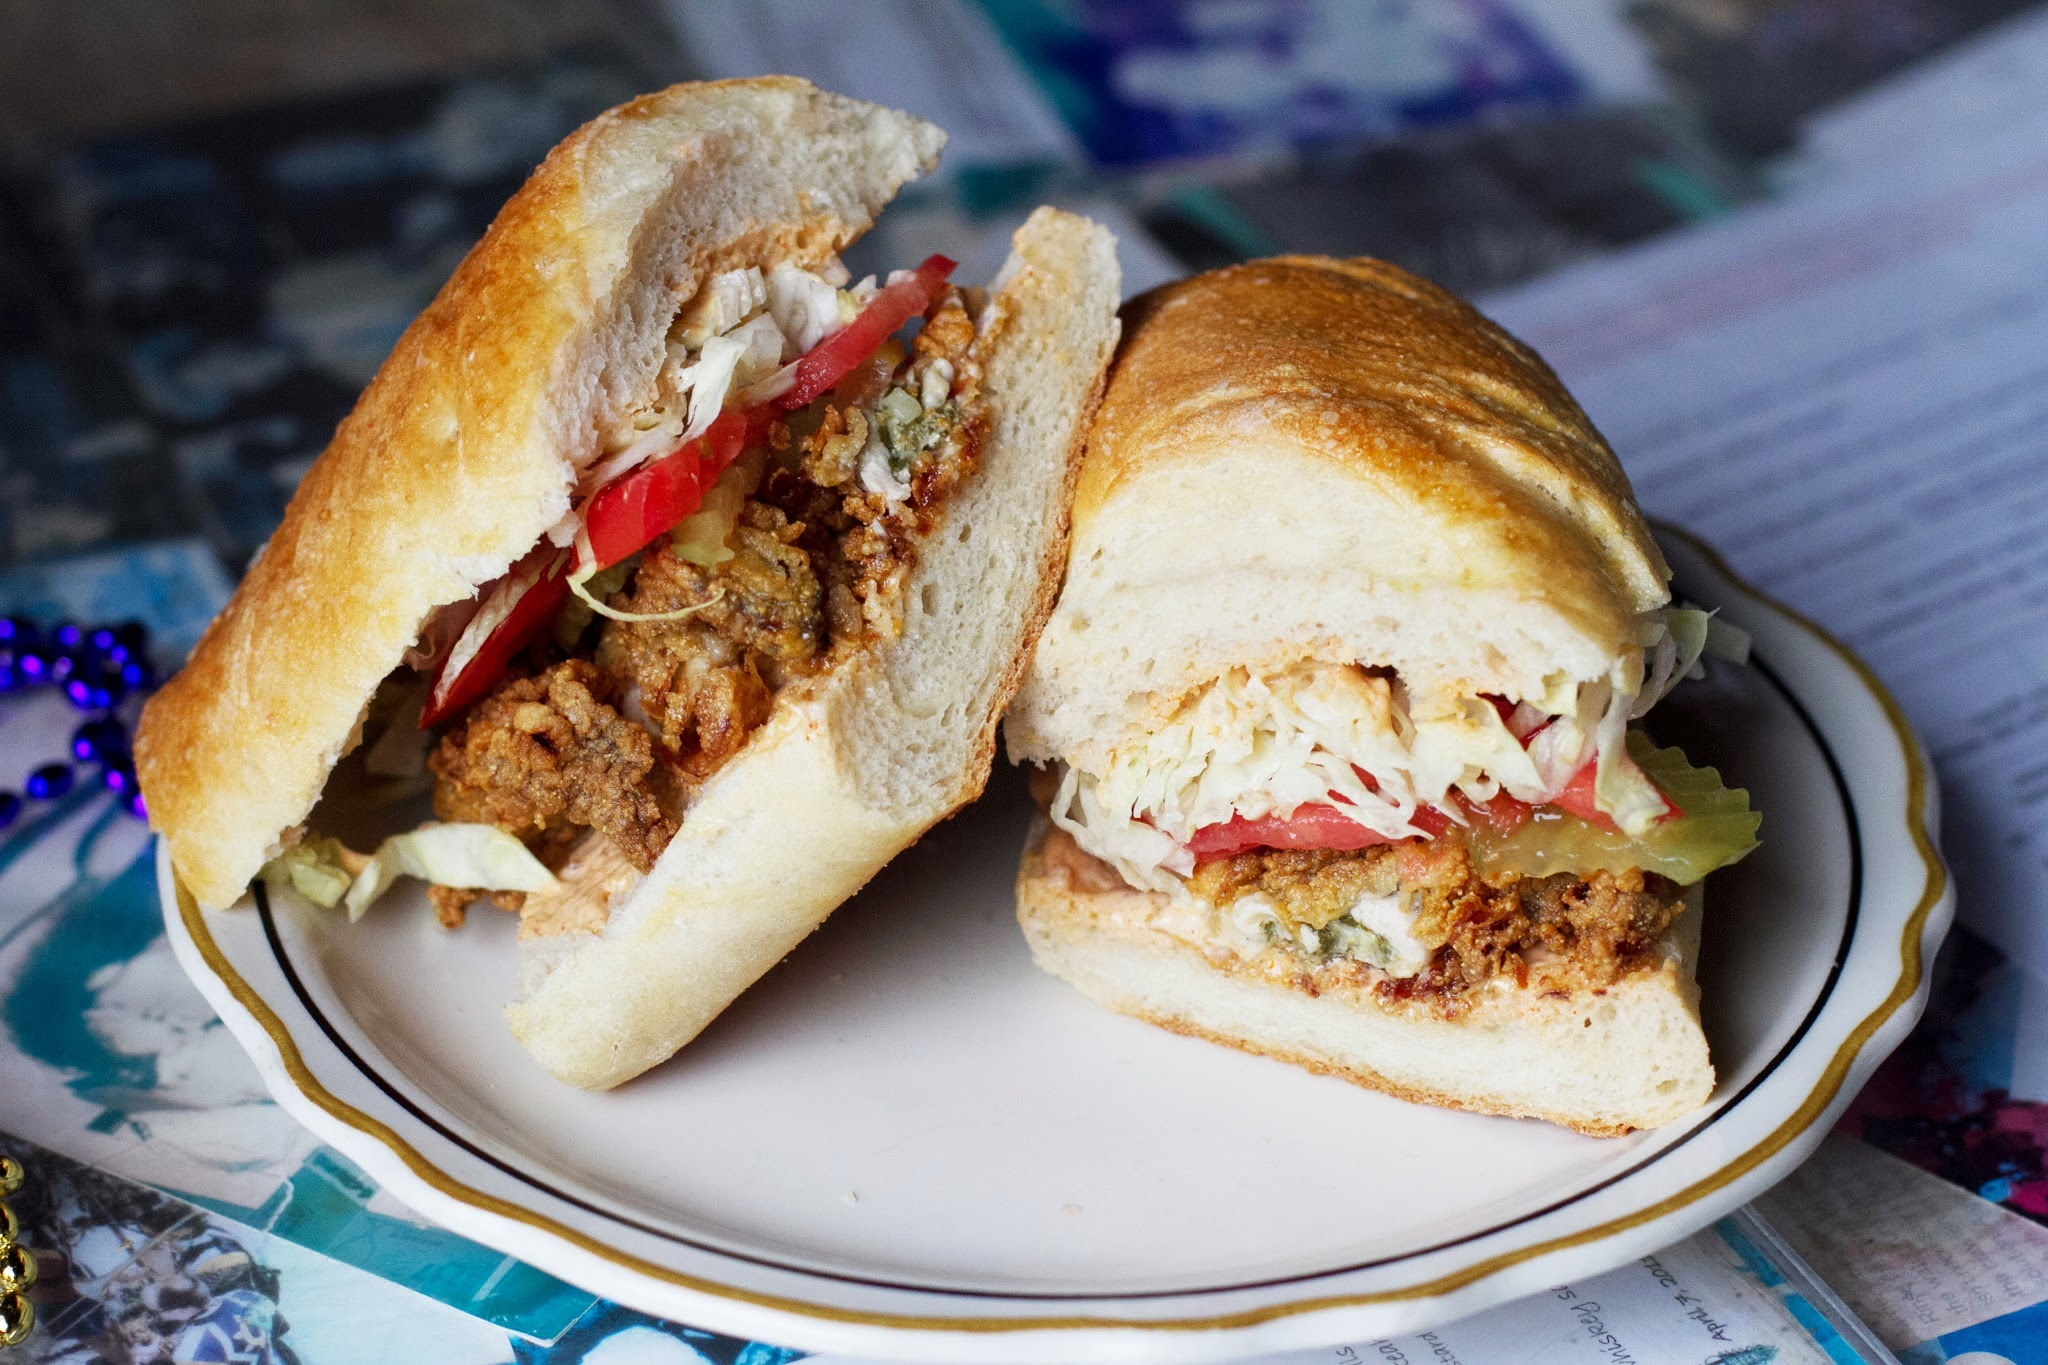 From Po-Boy sandwiches to crawfish beignets, Cajun Pacific Restaurant on Irving dishes out authentic Louisiana-style fare.